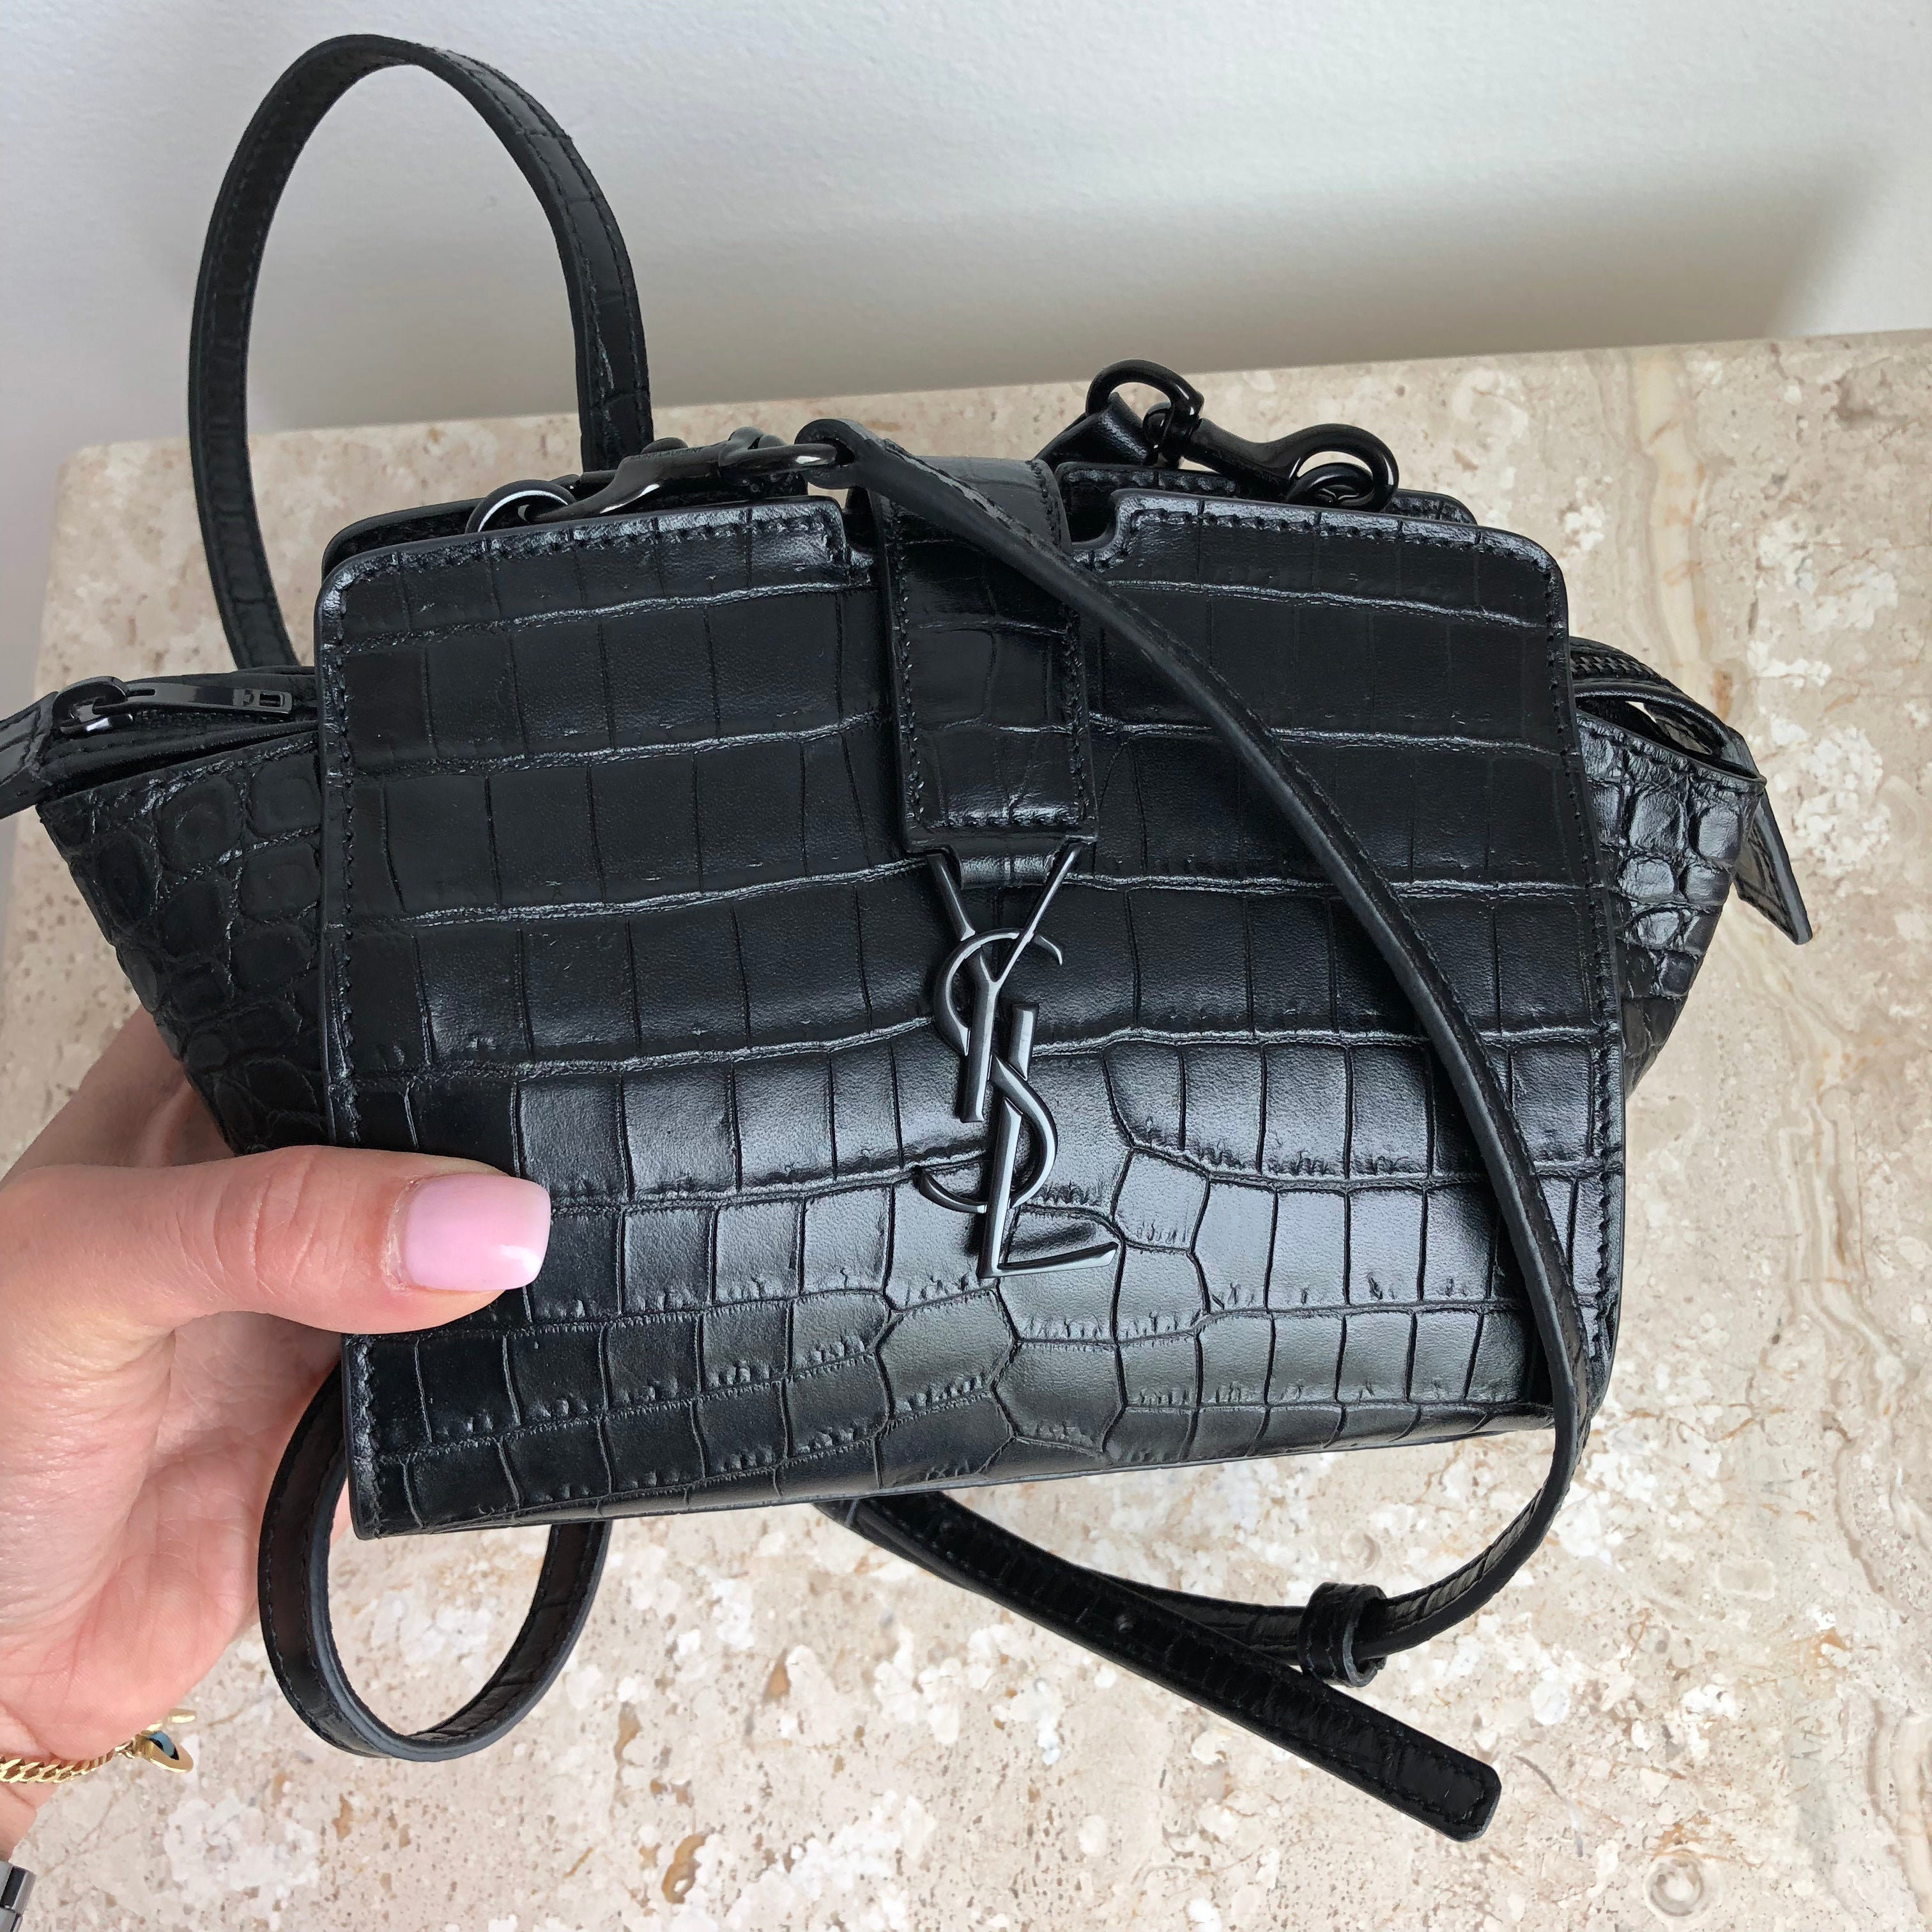 Authentic YVES SAINT LAURENT Black Mini Cabas Bag